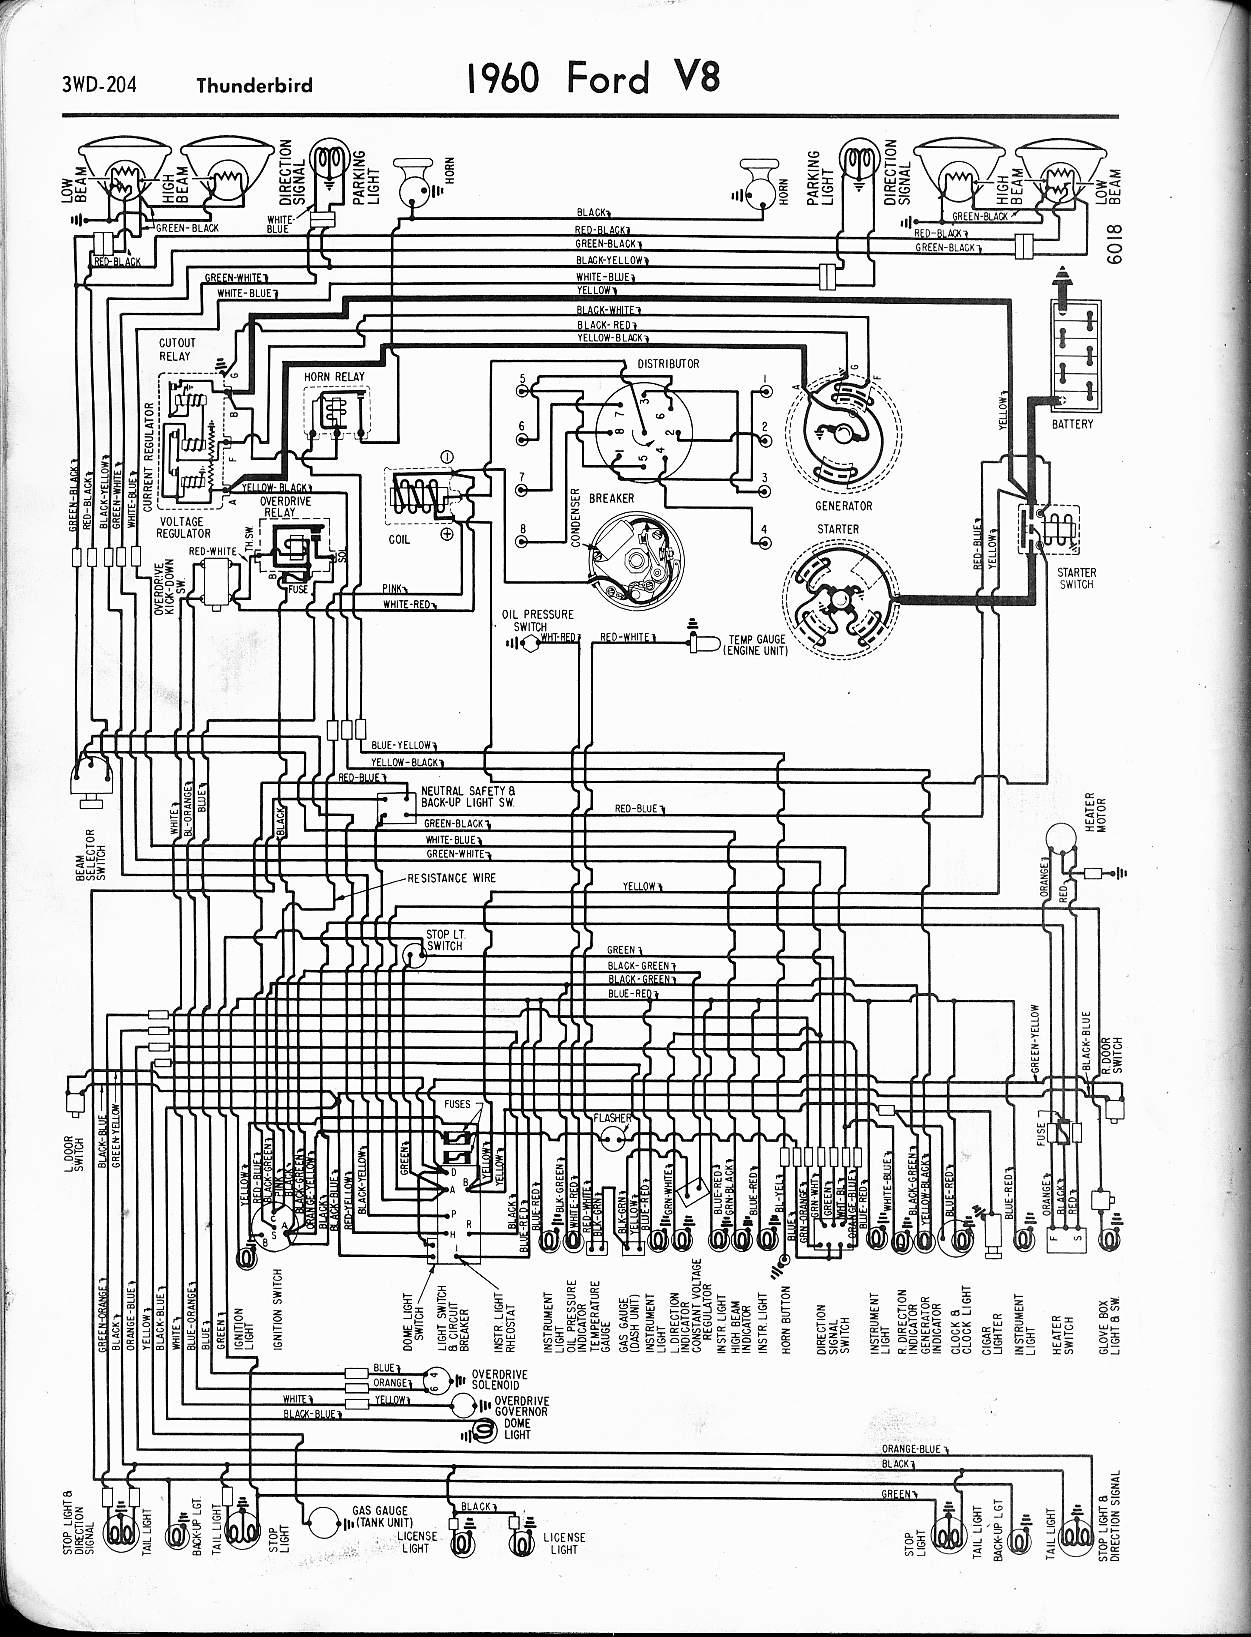 ford falcon eb radio wiring diagram volvo truck diagrams 57 65 1960 thunderbird